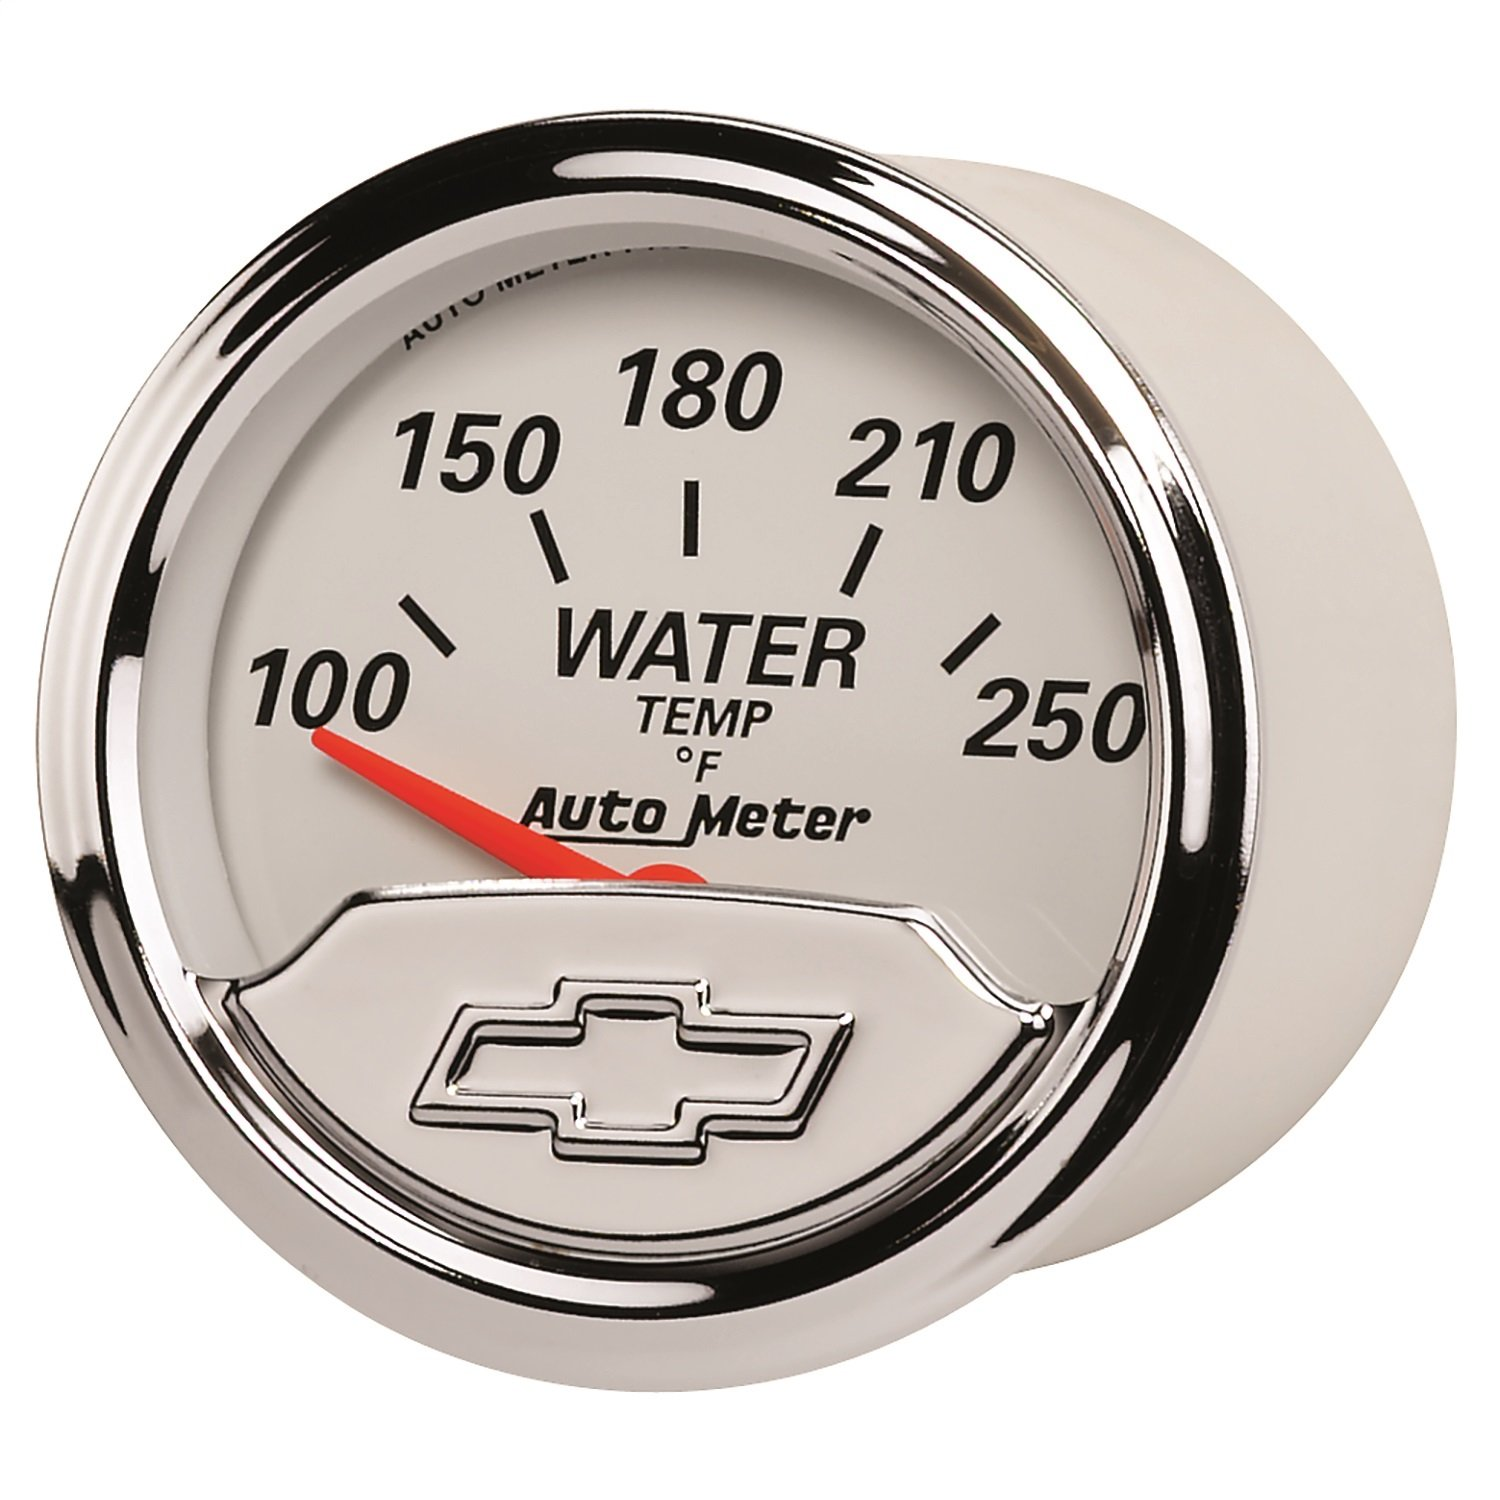 Auto Meter 1337-00408 Chevy Vintage 2-1/16'' Electric Water Temperature Gauge (100-250 Degree F, 52.4mm)